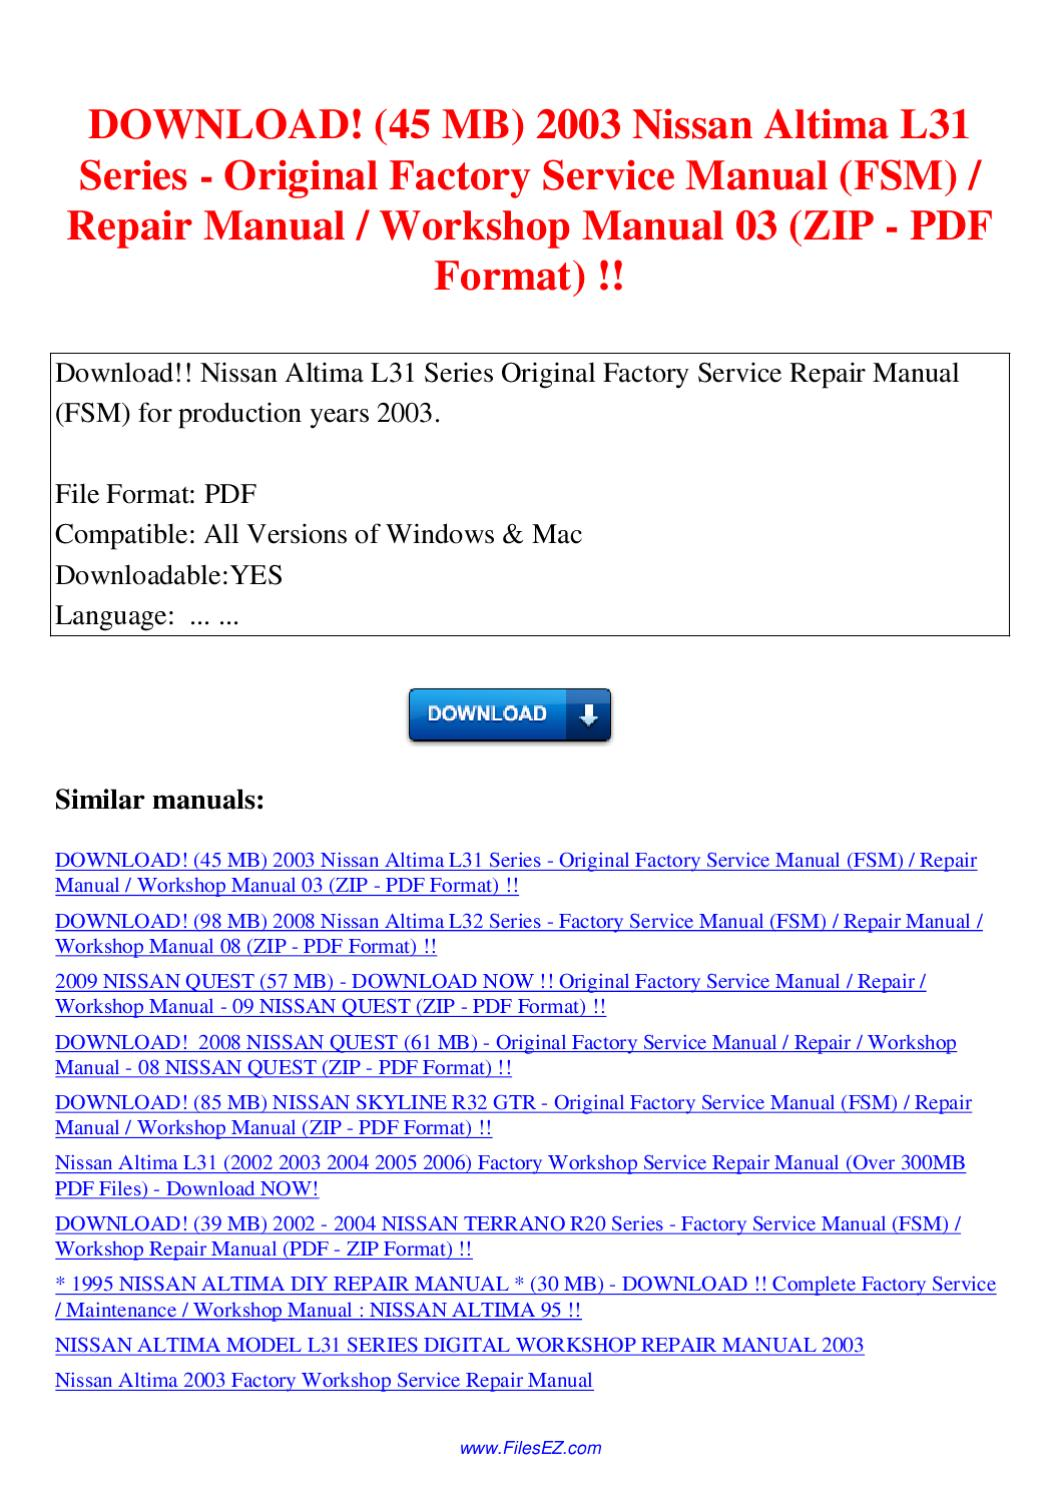 2003 nissan altima factory service manual